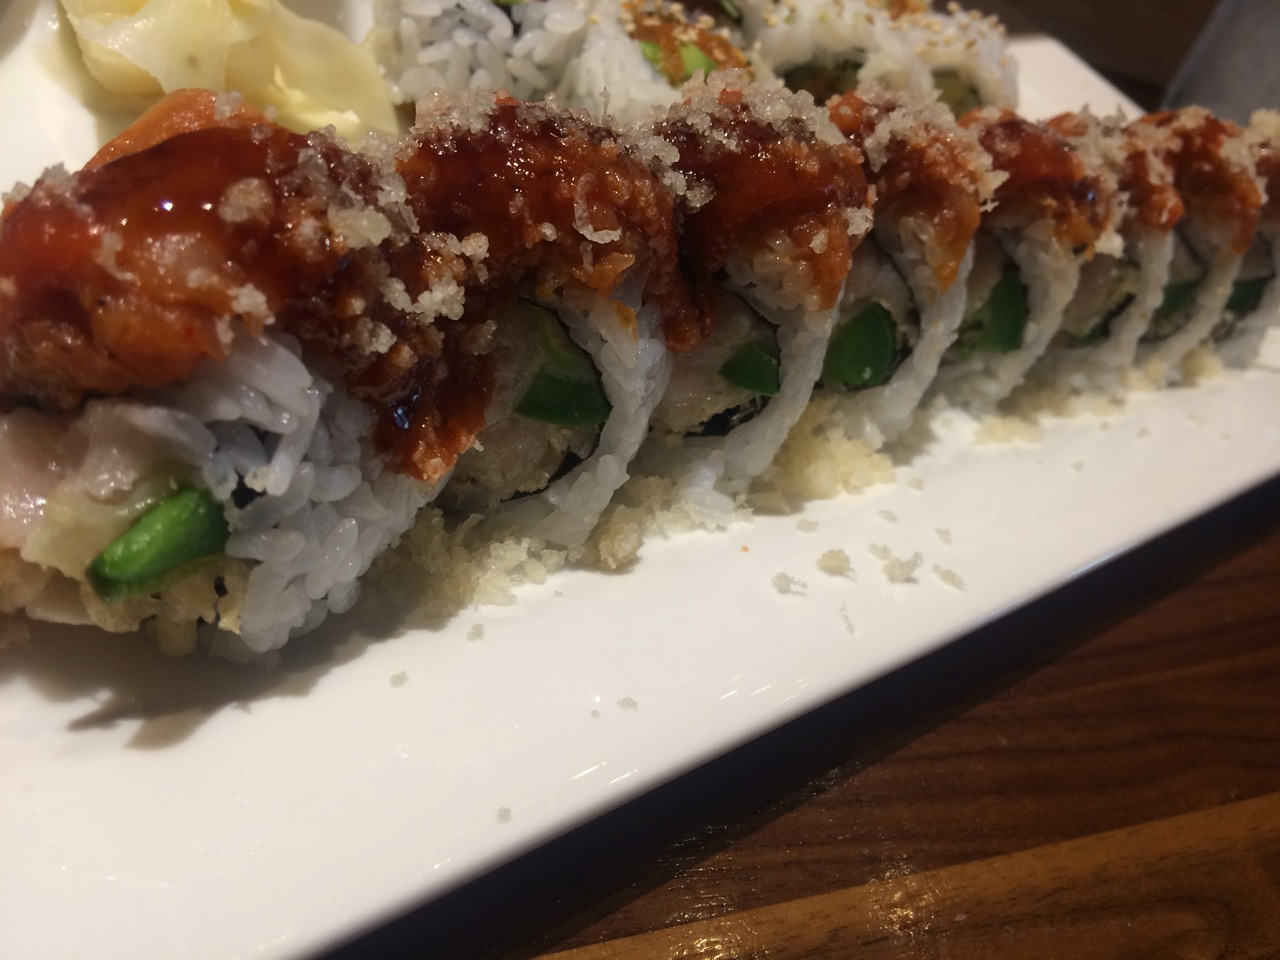 The Spicy Fire Alarm Sushi Roll at Aki Sushi - September 28 2017